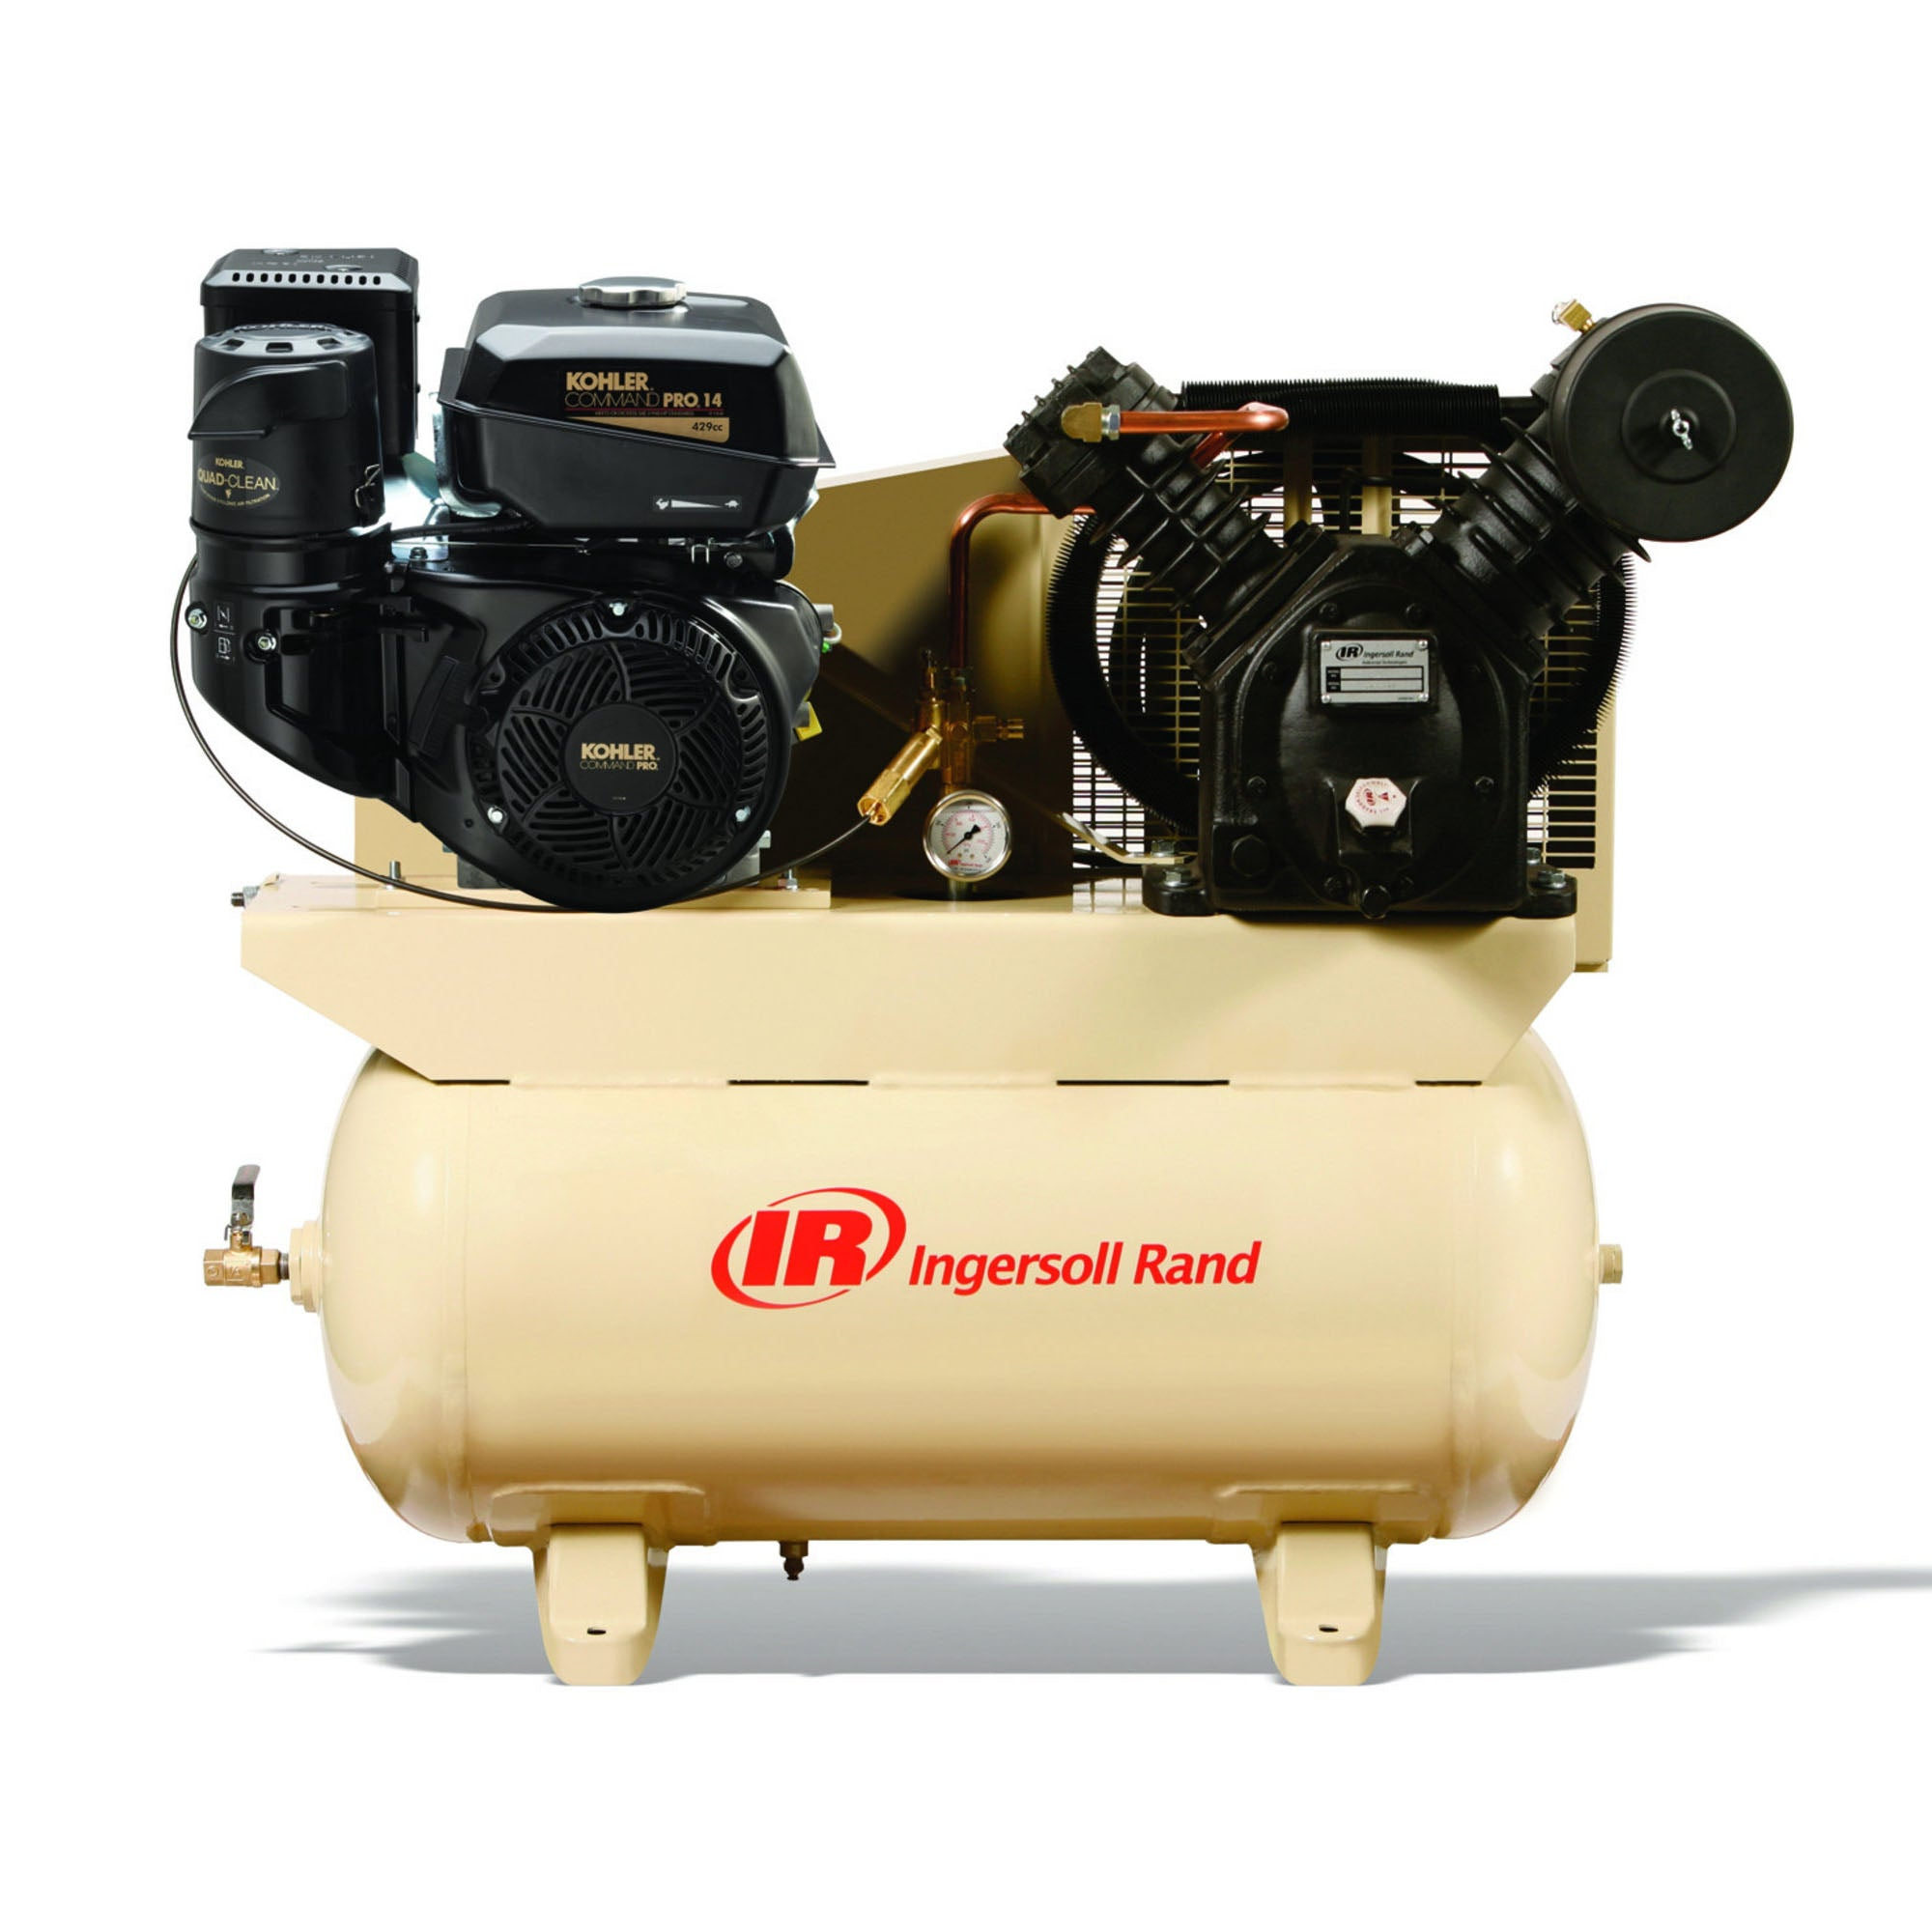 Ingersoll Rand 2475F14G 30HP 2 Stage Gas Truck Mount Air Compressor -  46821344